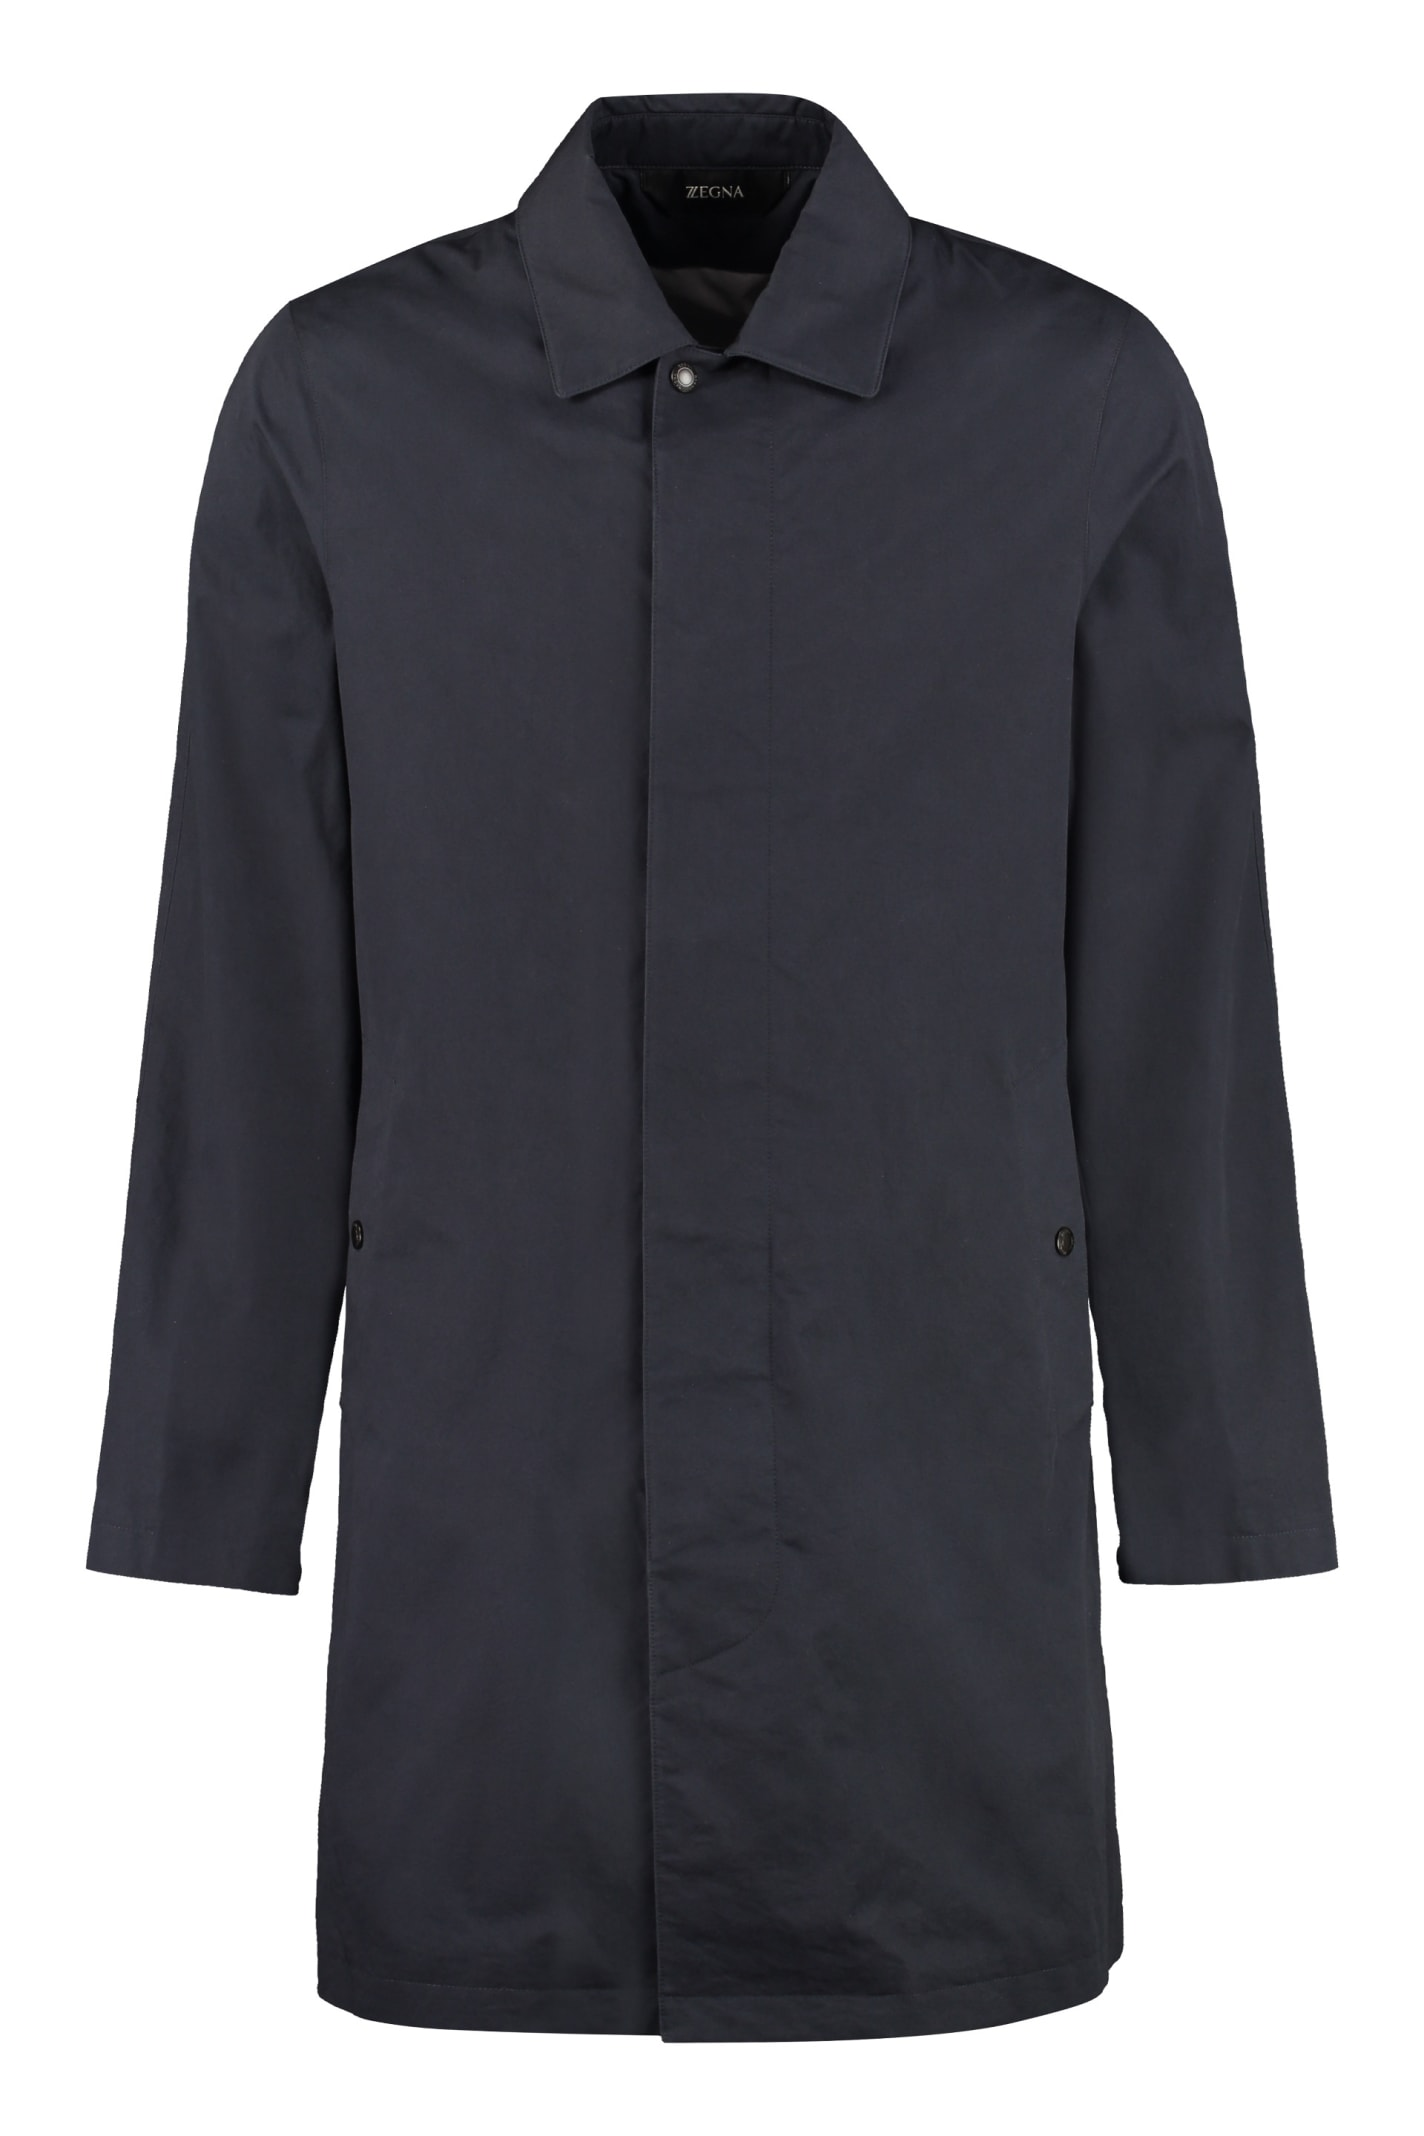 Z Zegna Cotton Trench Coat